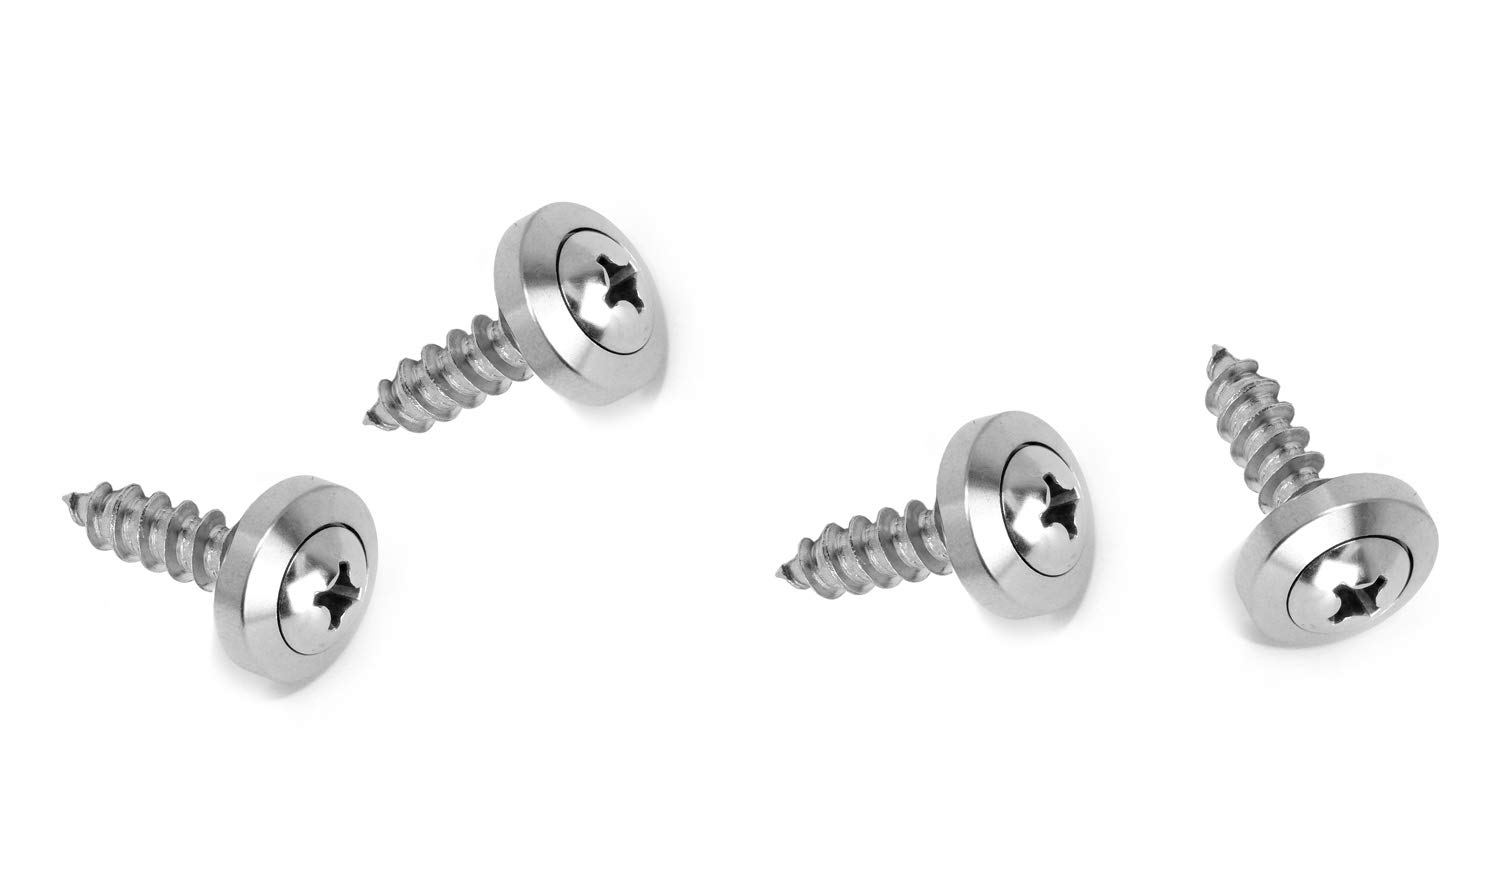 Black LFPartS Stainless Steel Rust Resistant License Plate Frame Self Tapping Screws Fasteners M6x20mm